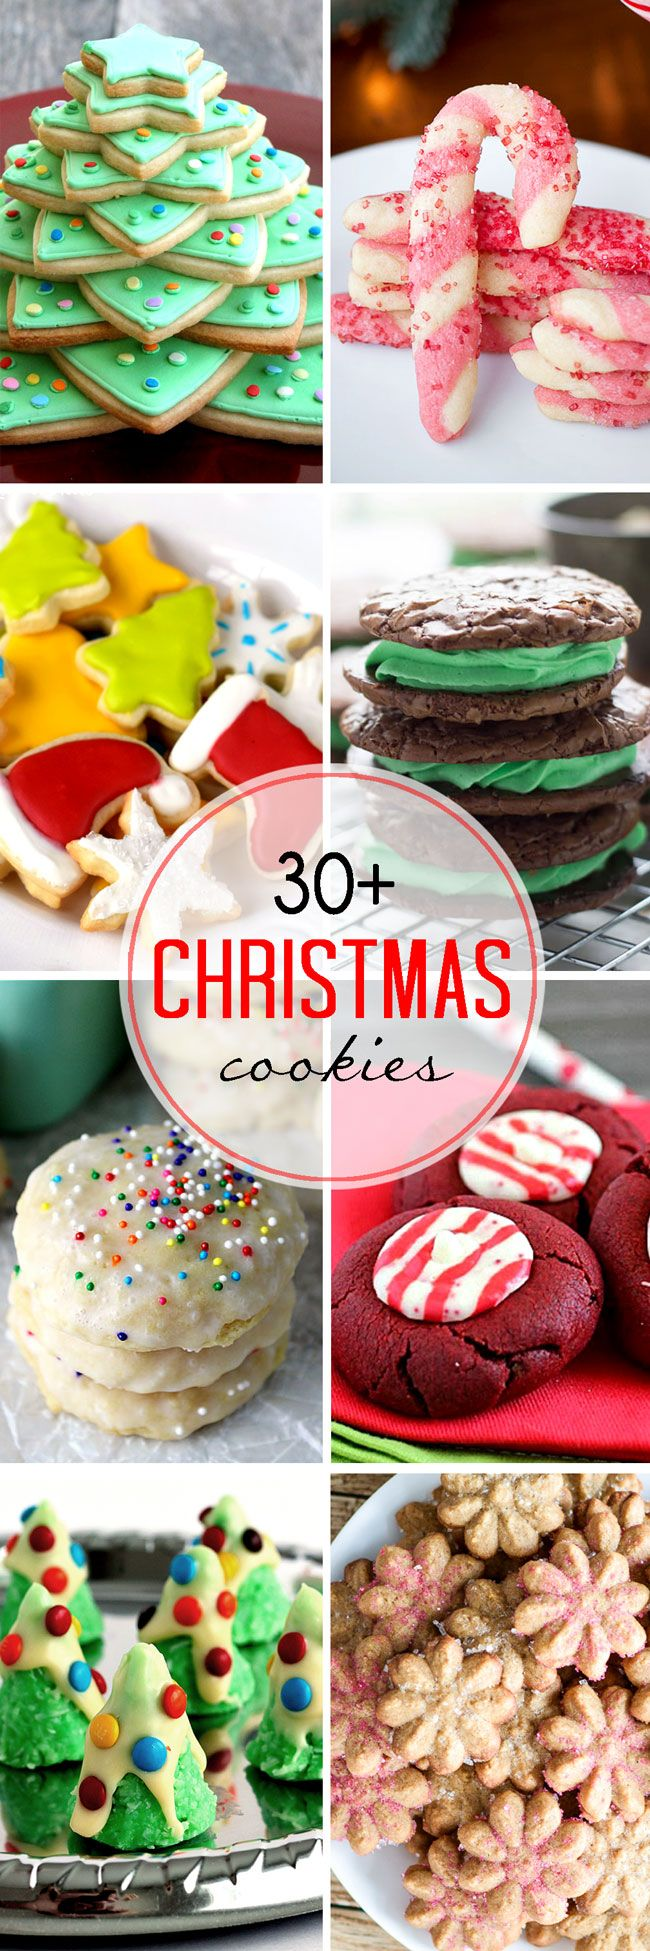 More than 30 of the best Christmas cookie recipes to get your Christmas baking off to the right start!